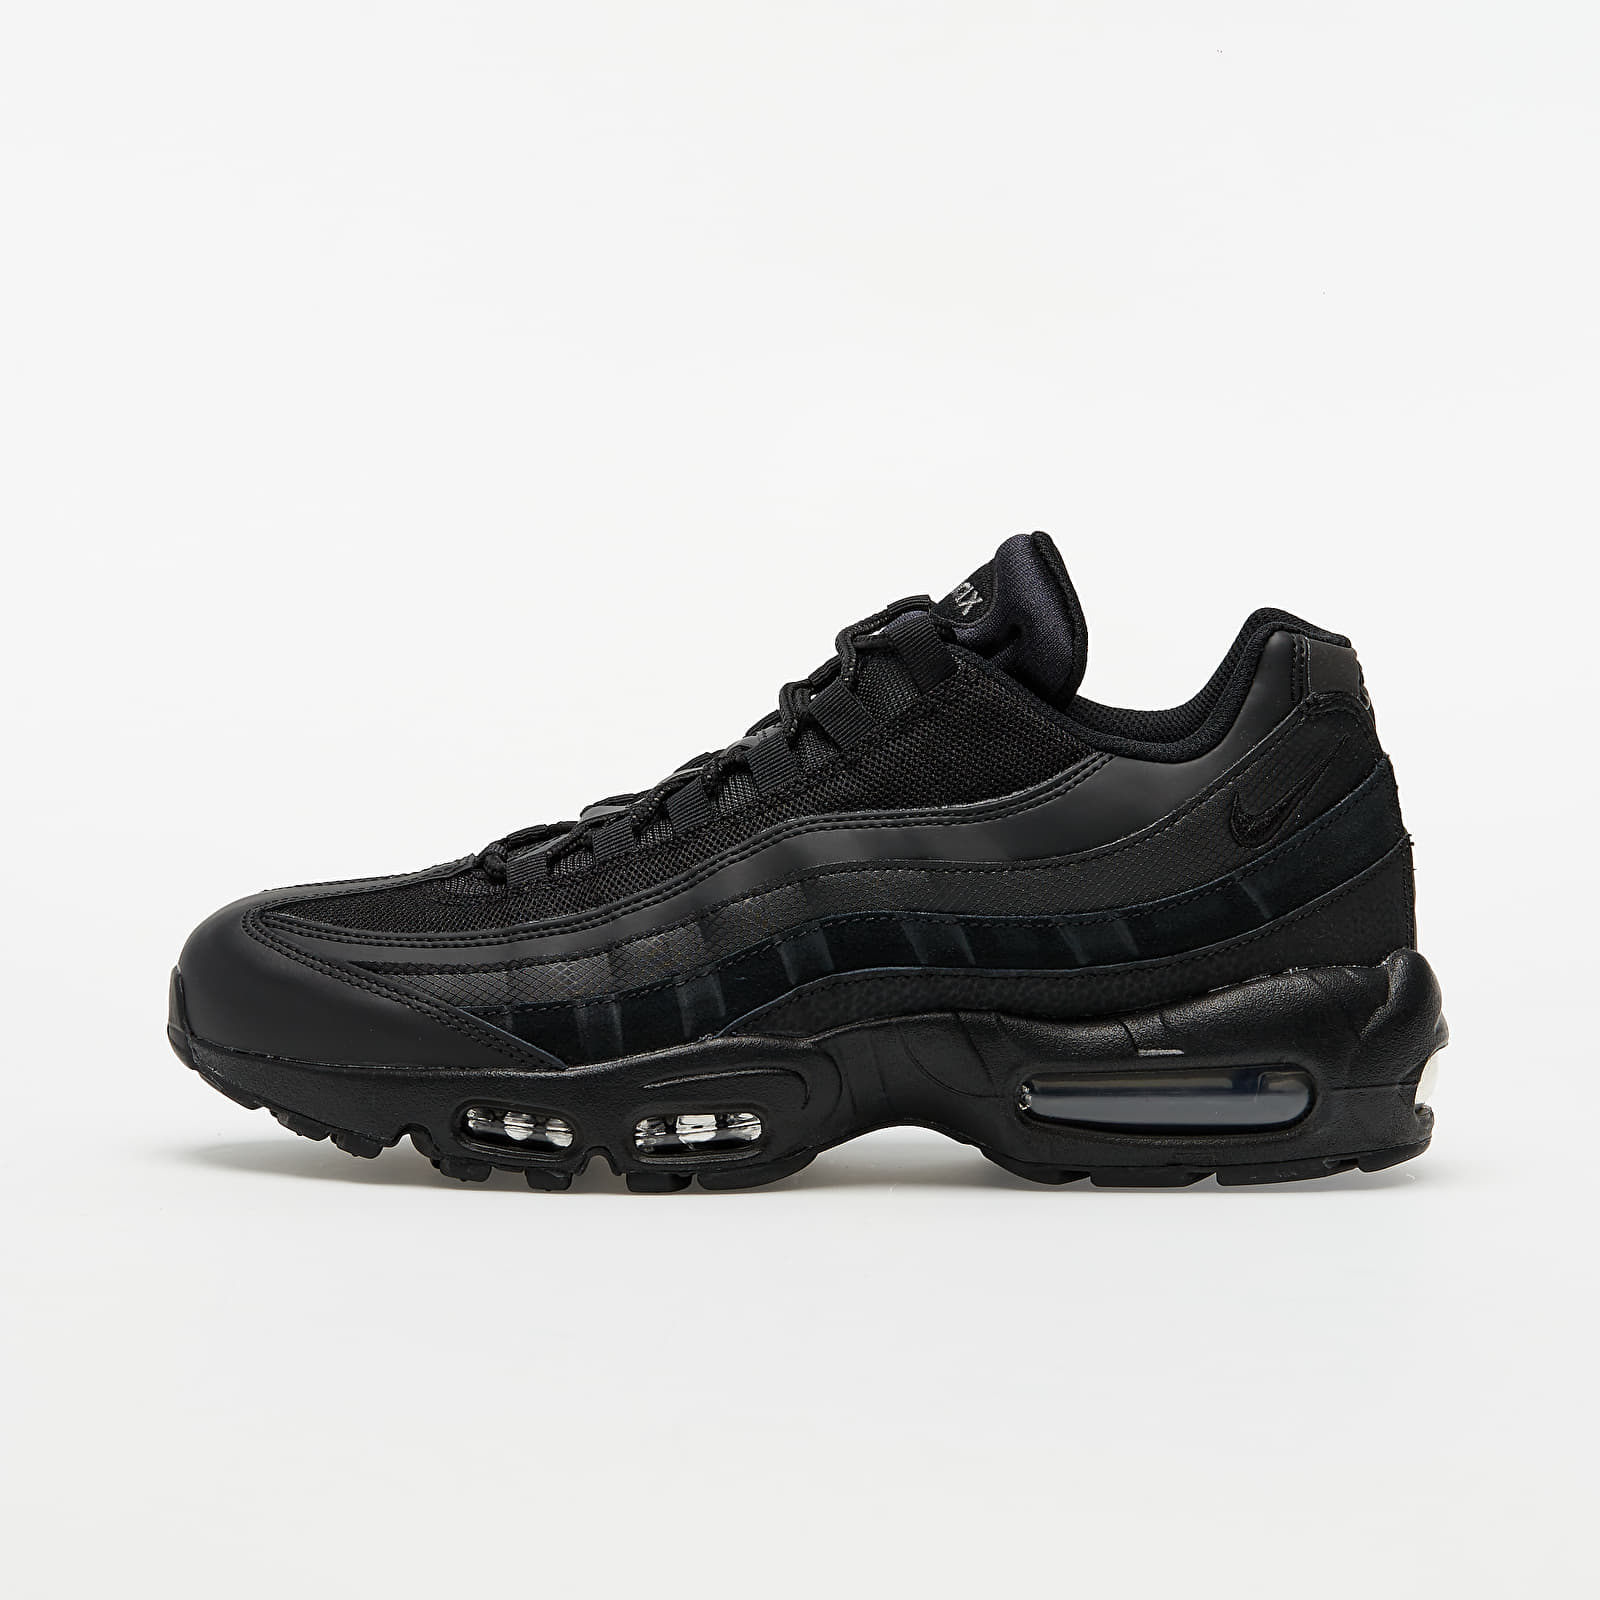 Nike Air Max 95 Essential Black/ Black-Dark Grey EUR 40.5